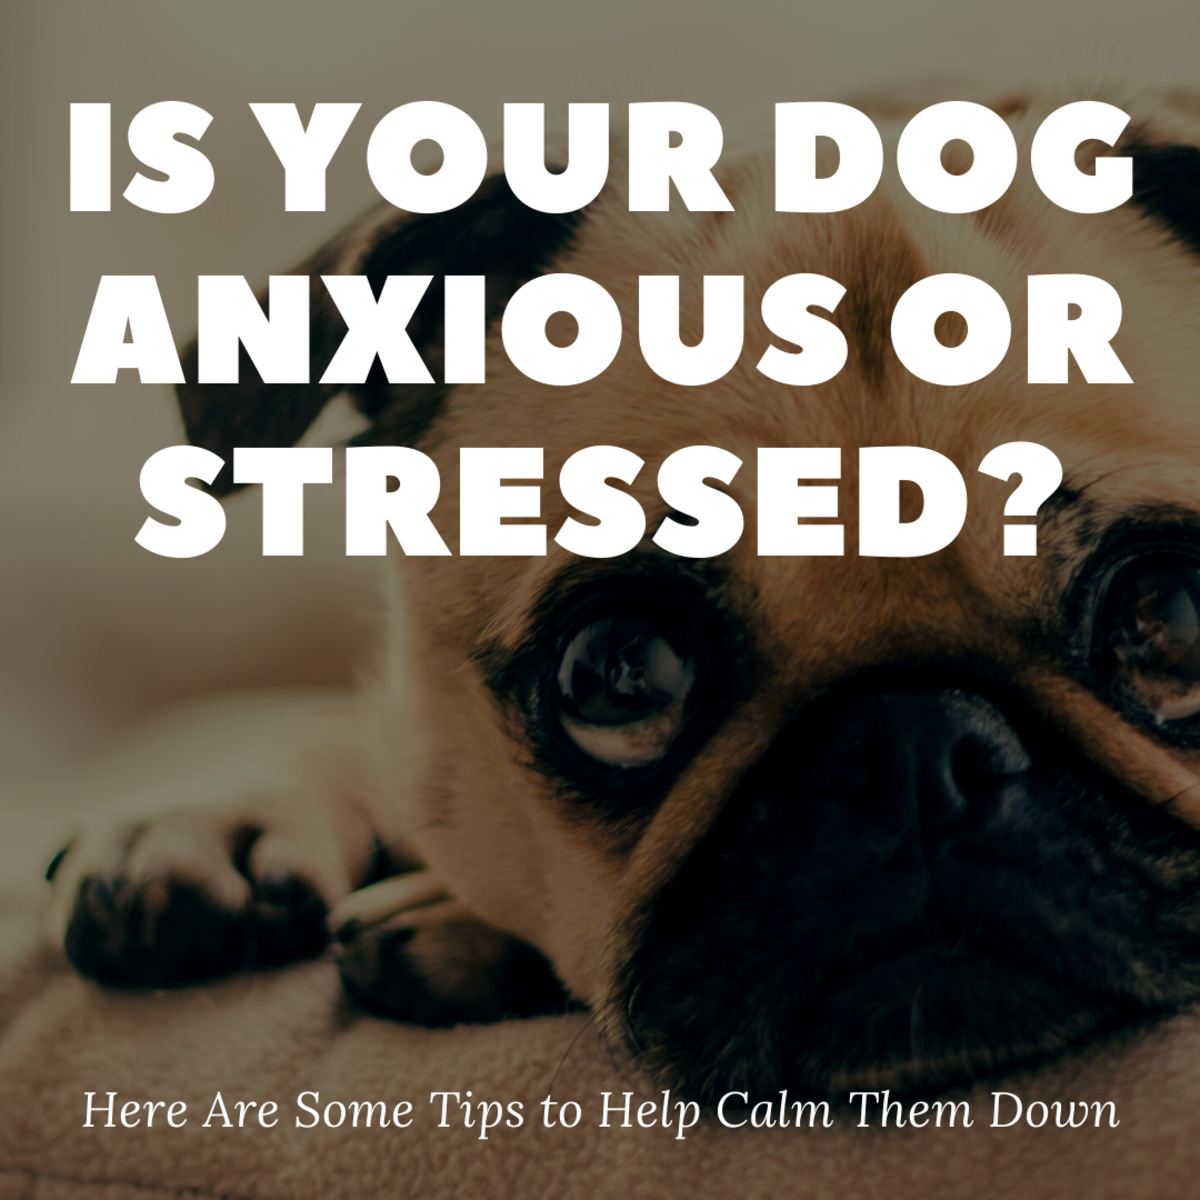 How to Calm an Anxious or Stressed Dog